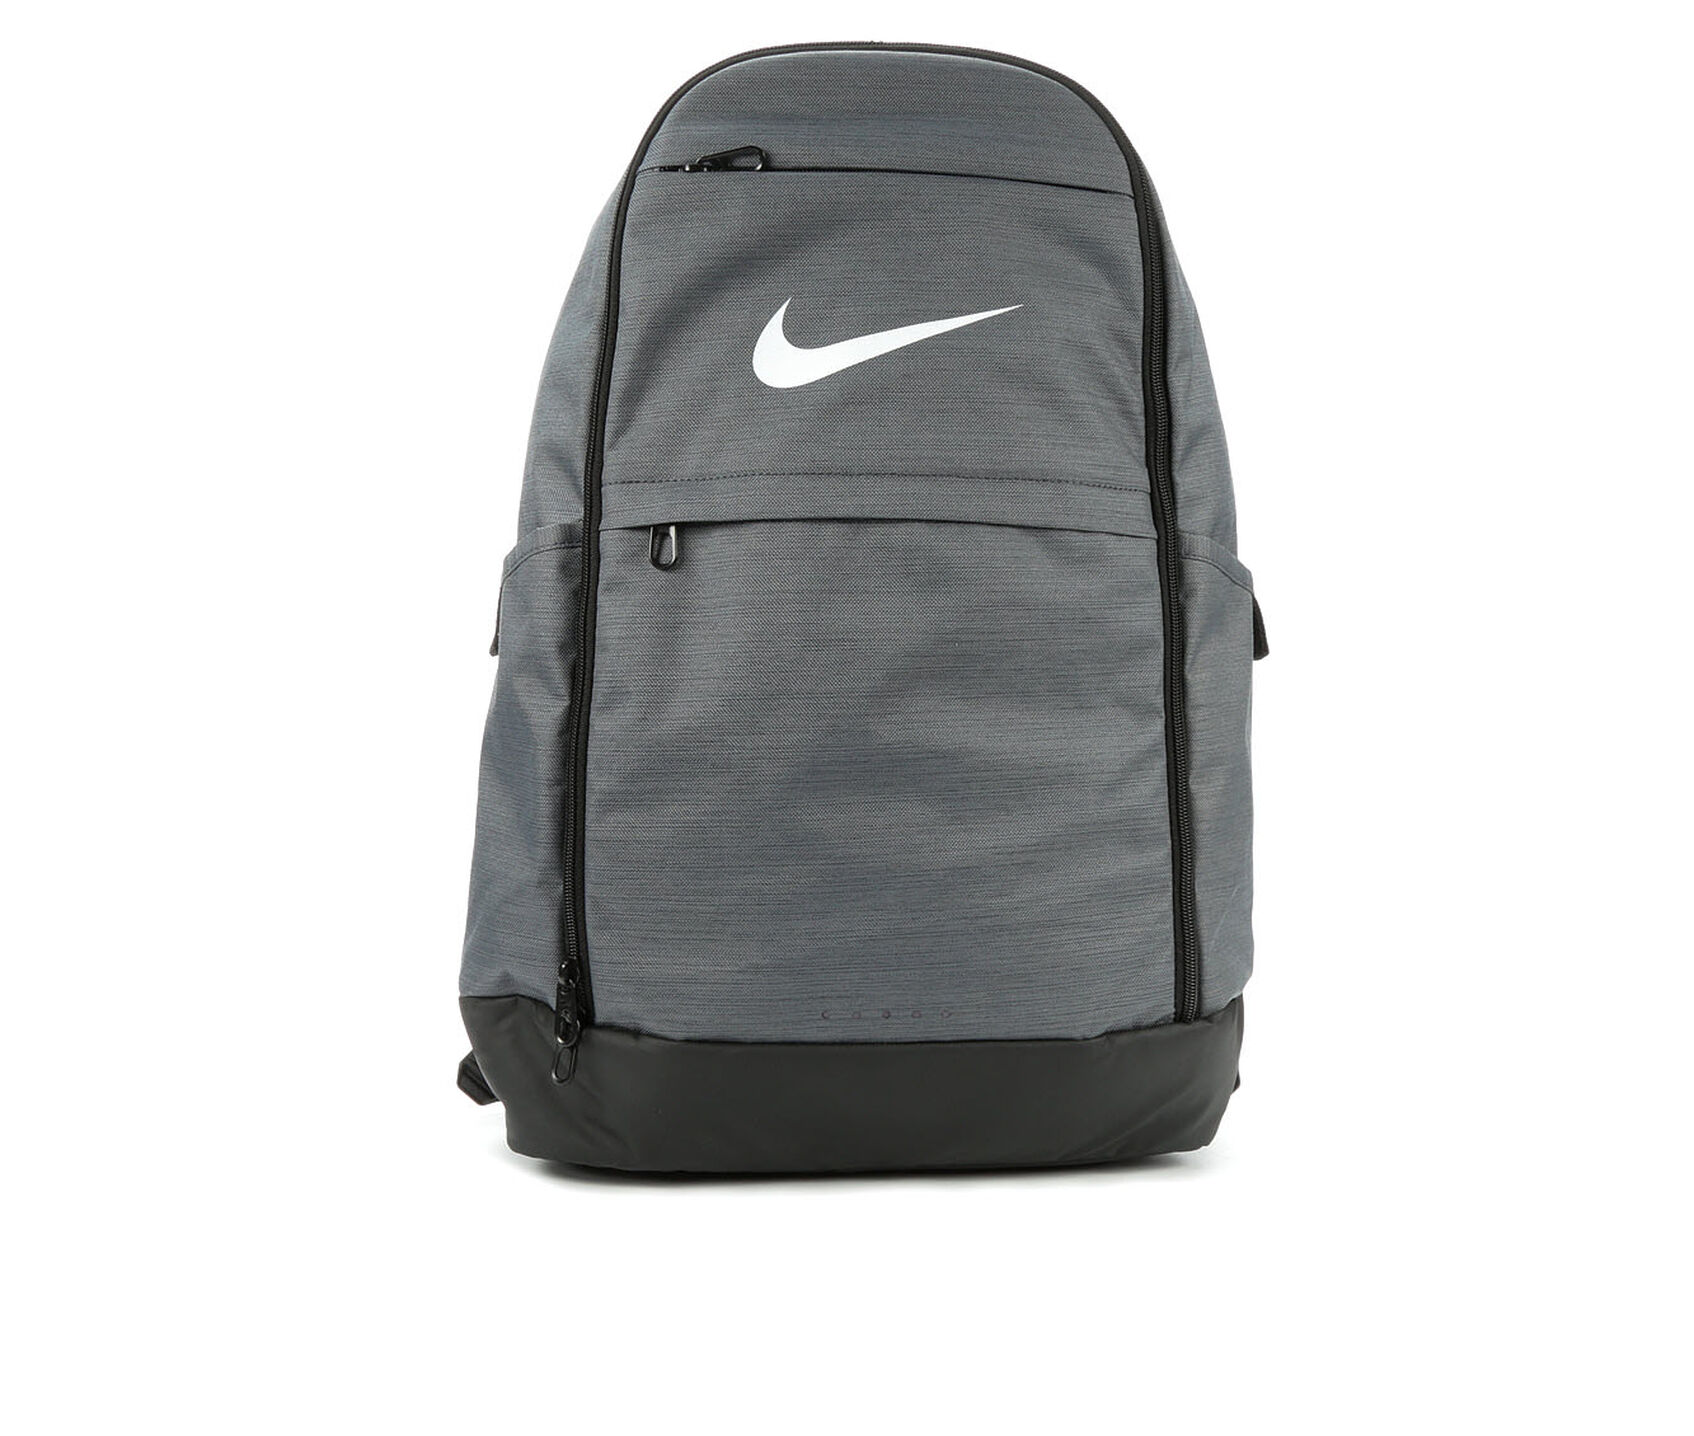 6ee1d2440d Nike Brasilia XL Backpack. Previous